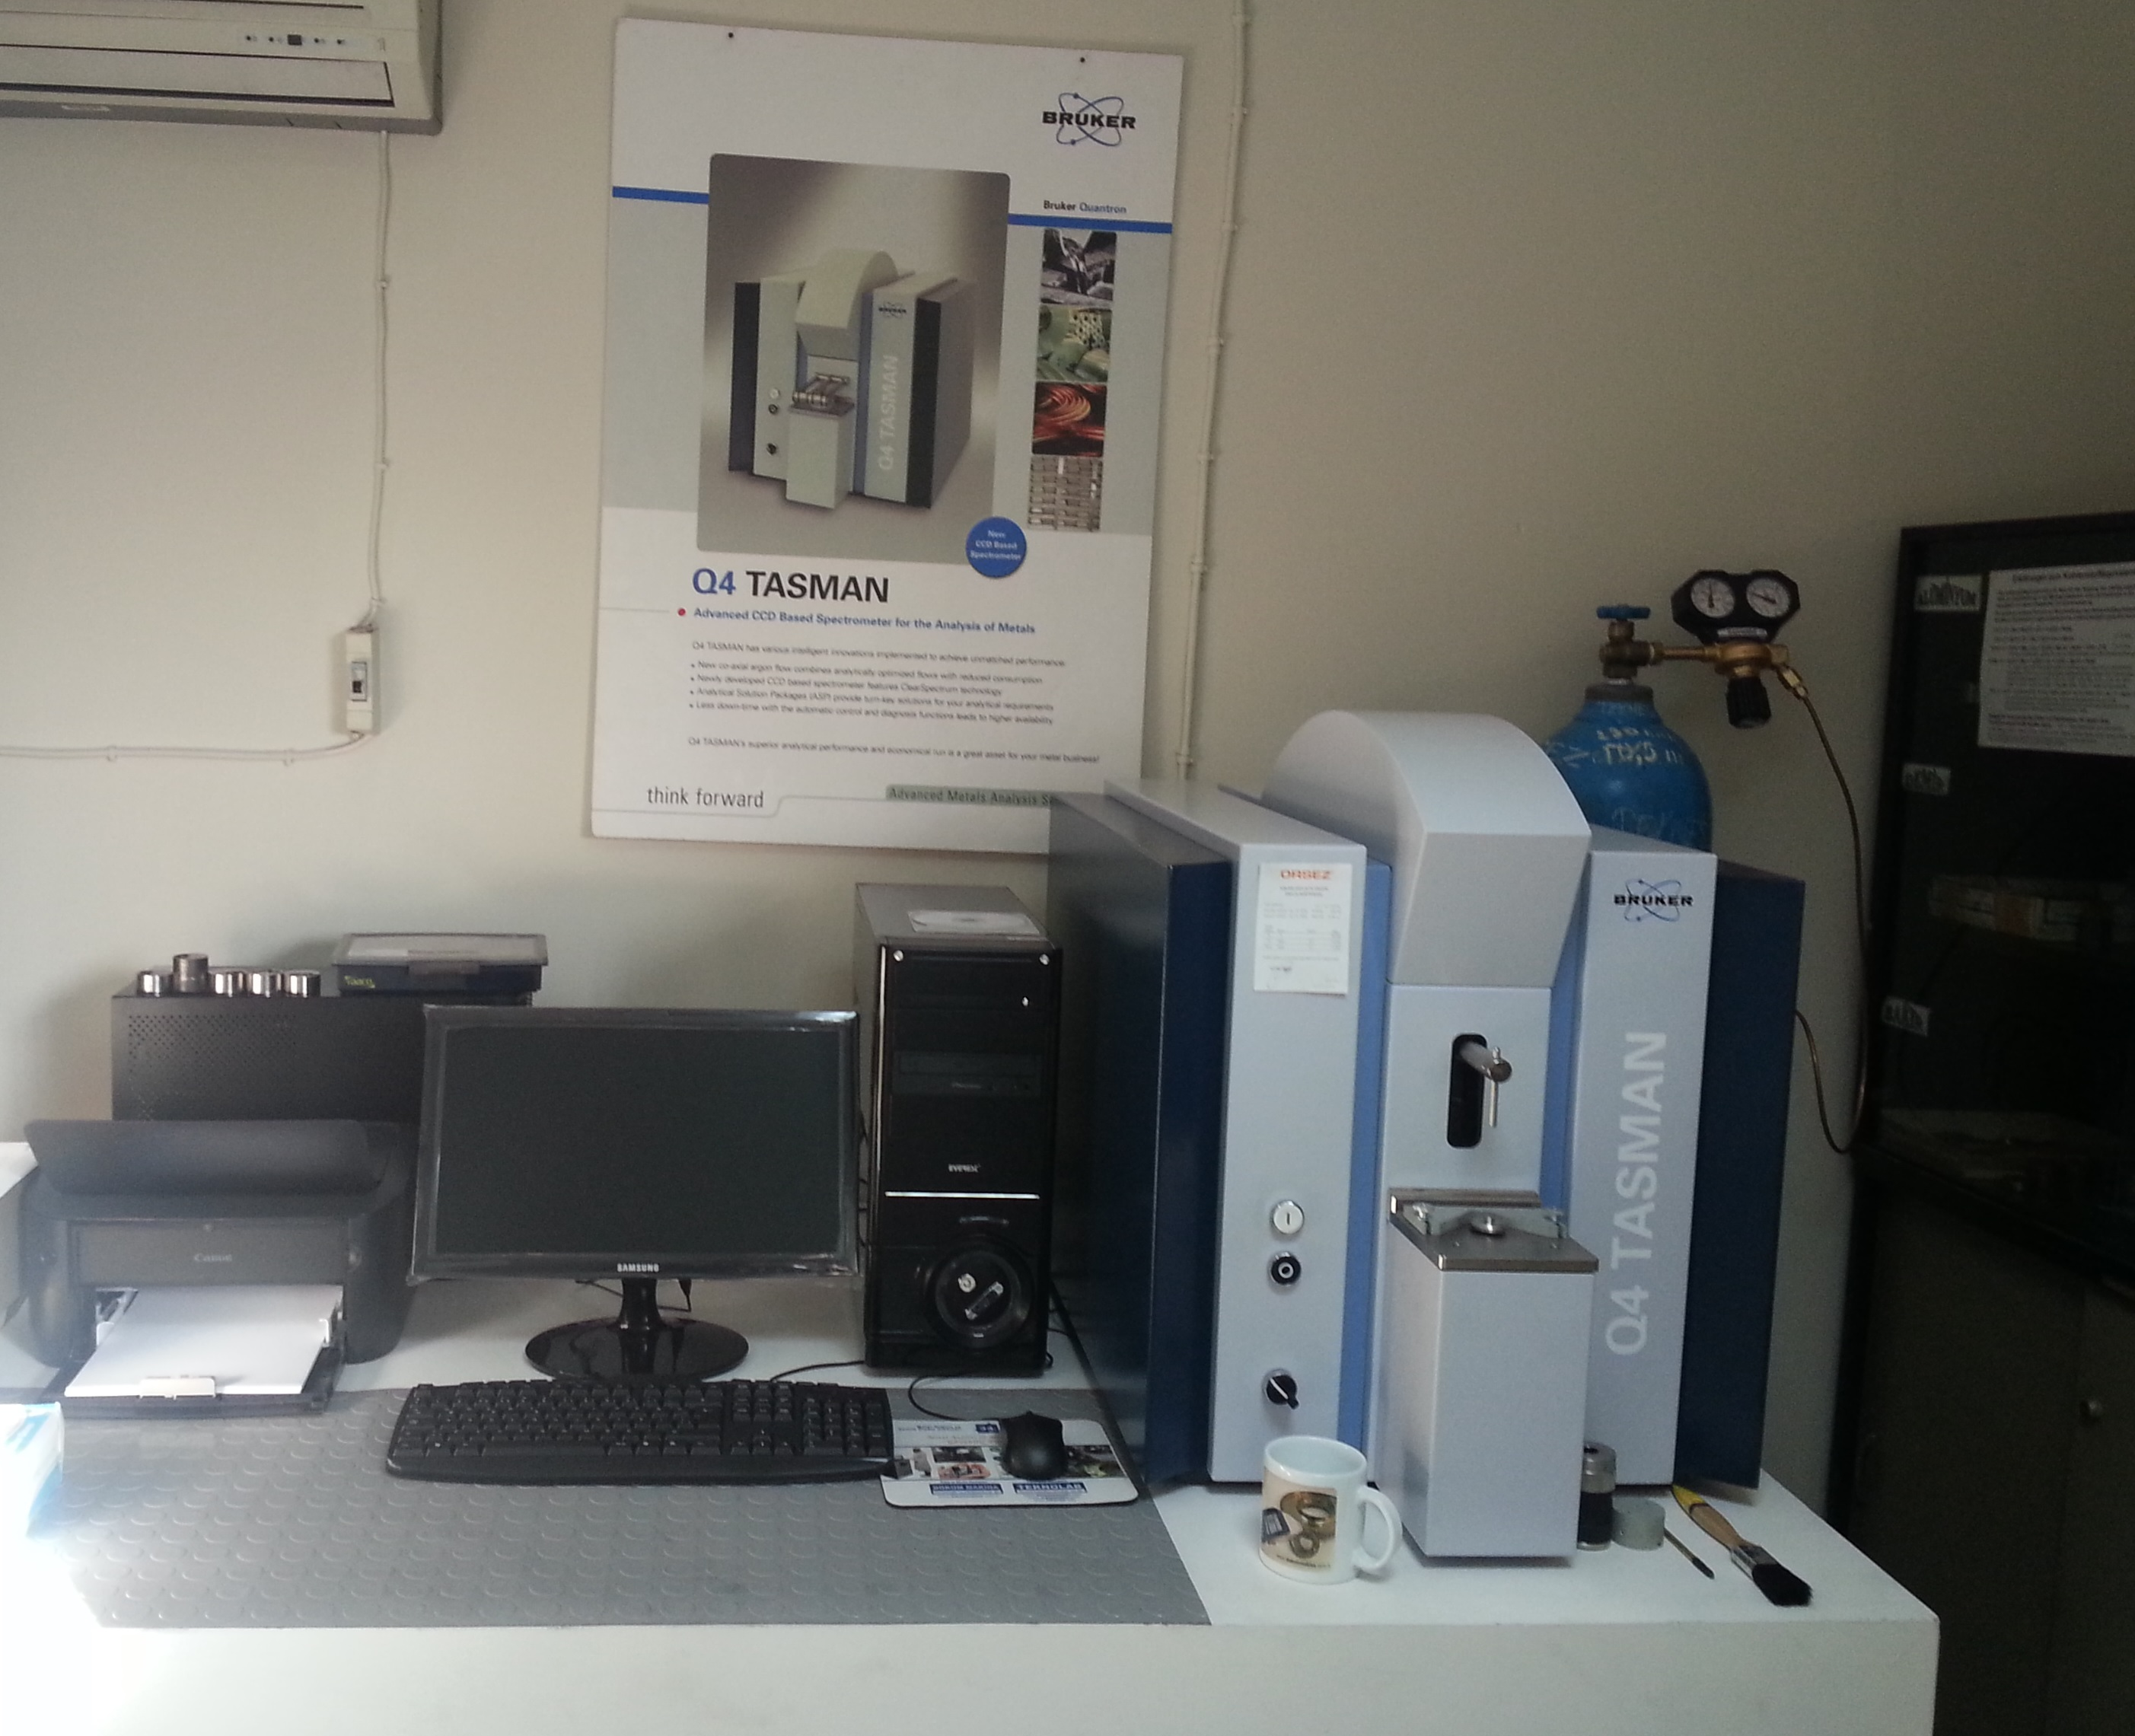 Manisa Celal Bayar University has decided to buy Spectrometer which has Fe, Al, Cu, Ni, Zn, Pb, Mg.